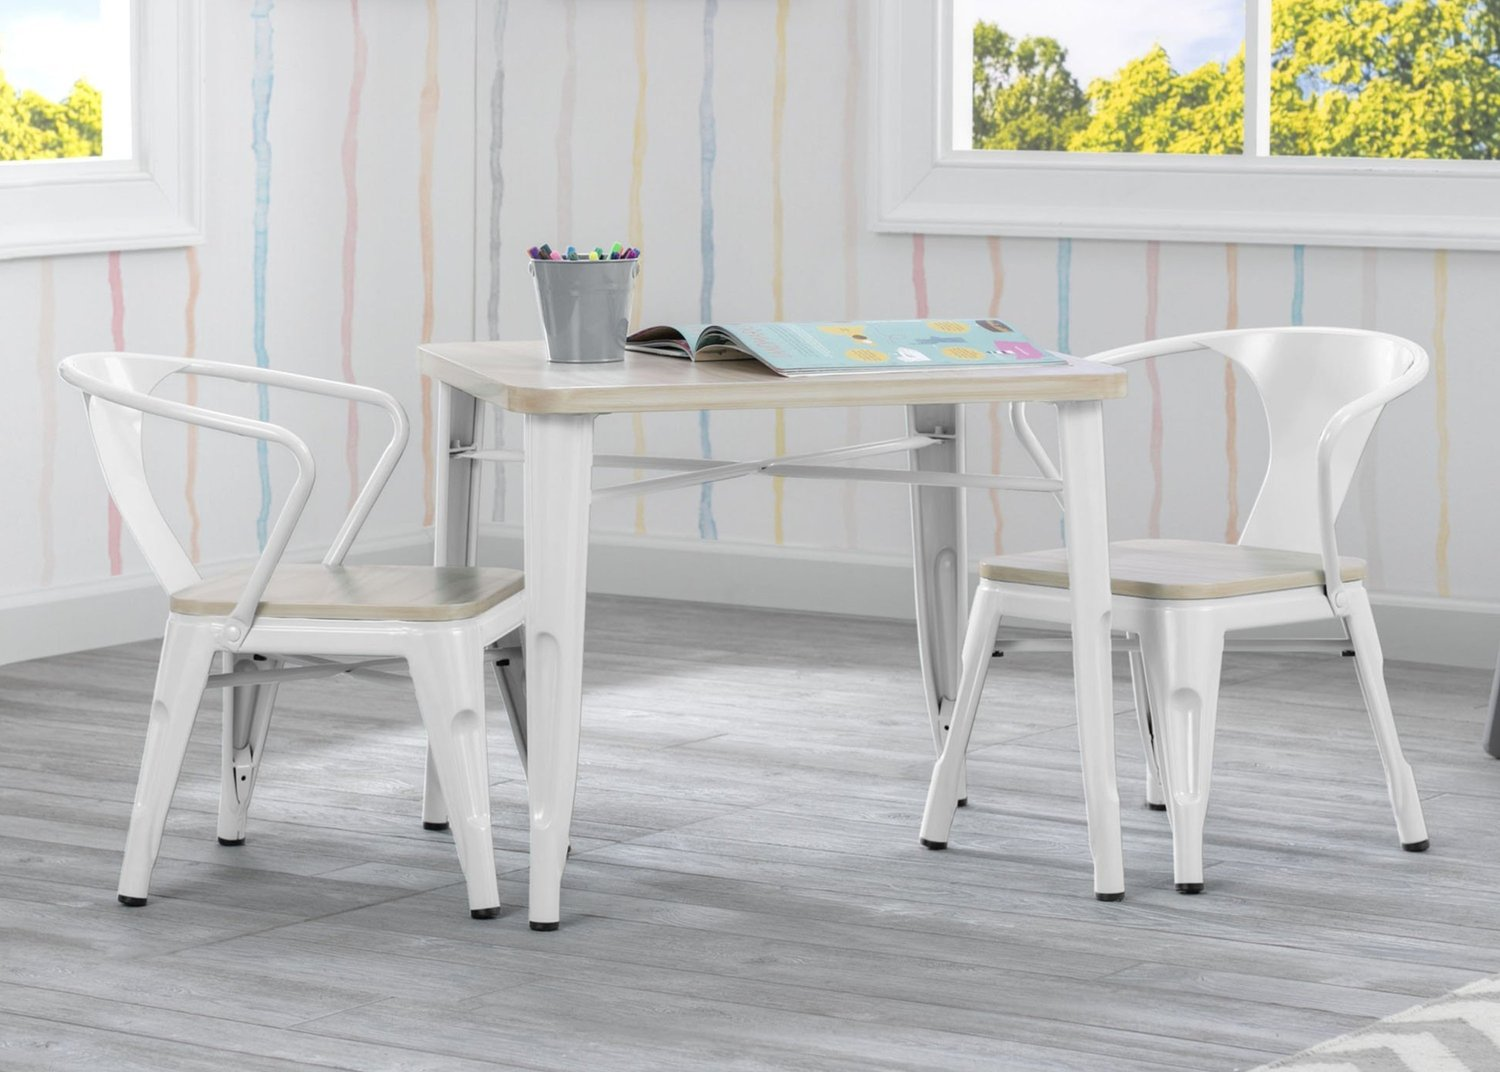 Delta Bistro Kids Table and Chair Set in White and Natural